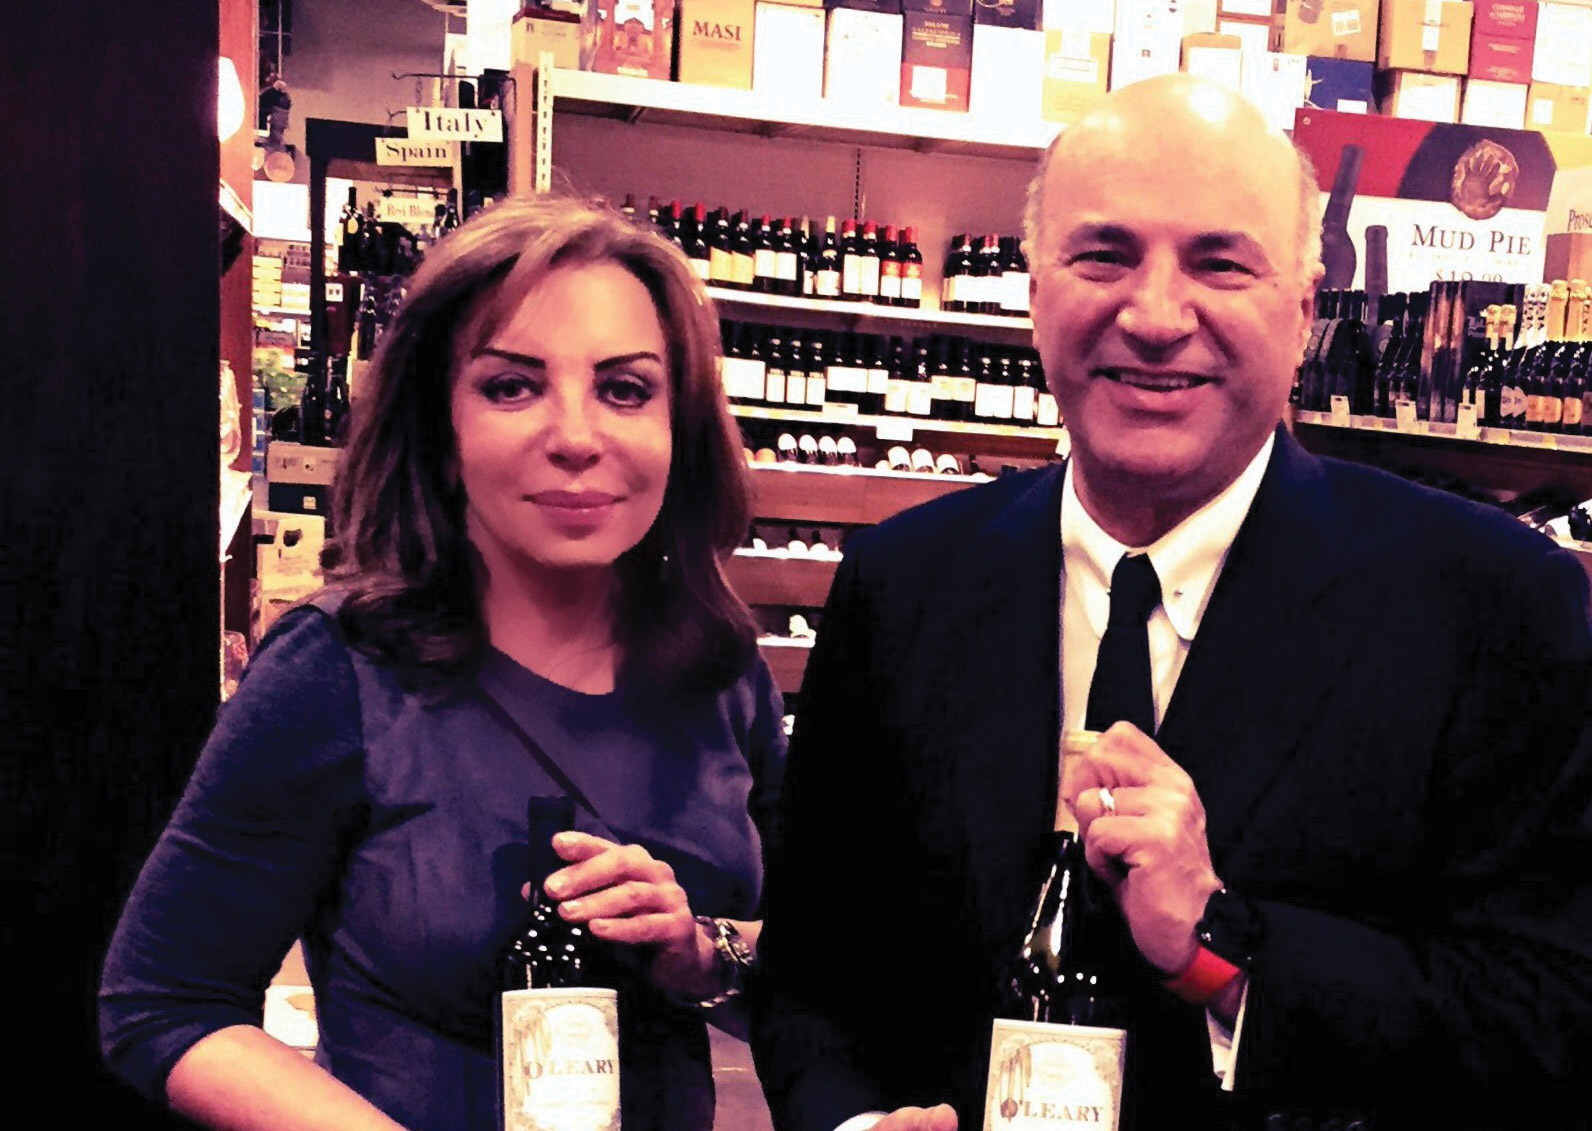 Anne Marie Harrison with Kevin O'Leary standing in her wine store each holding a bottle of wine.